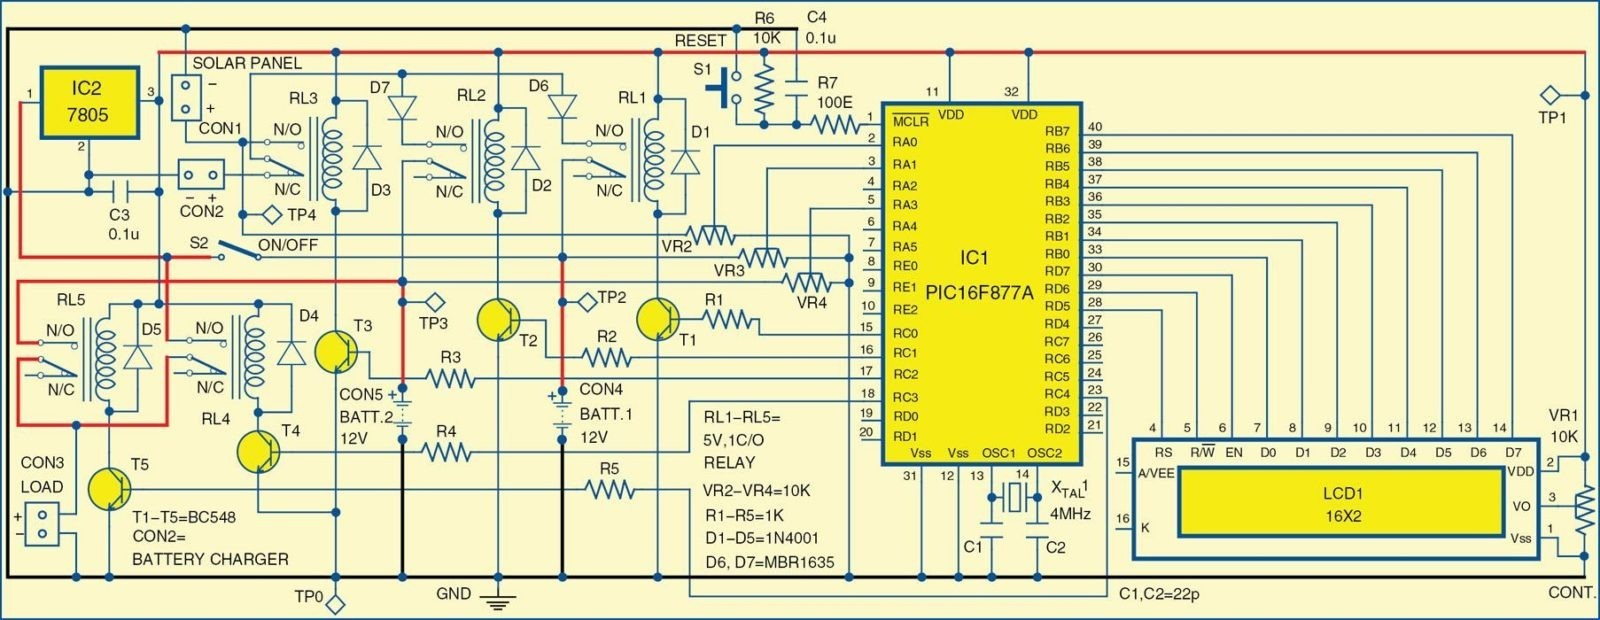 hight resolution of 1 circuit diagram of the solar powered home lighting system